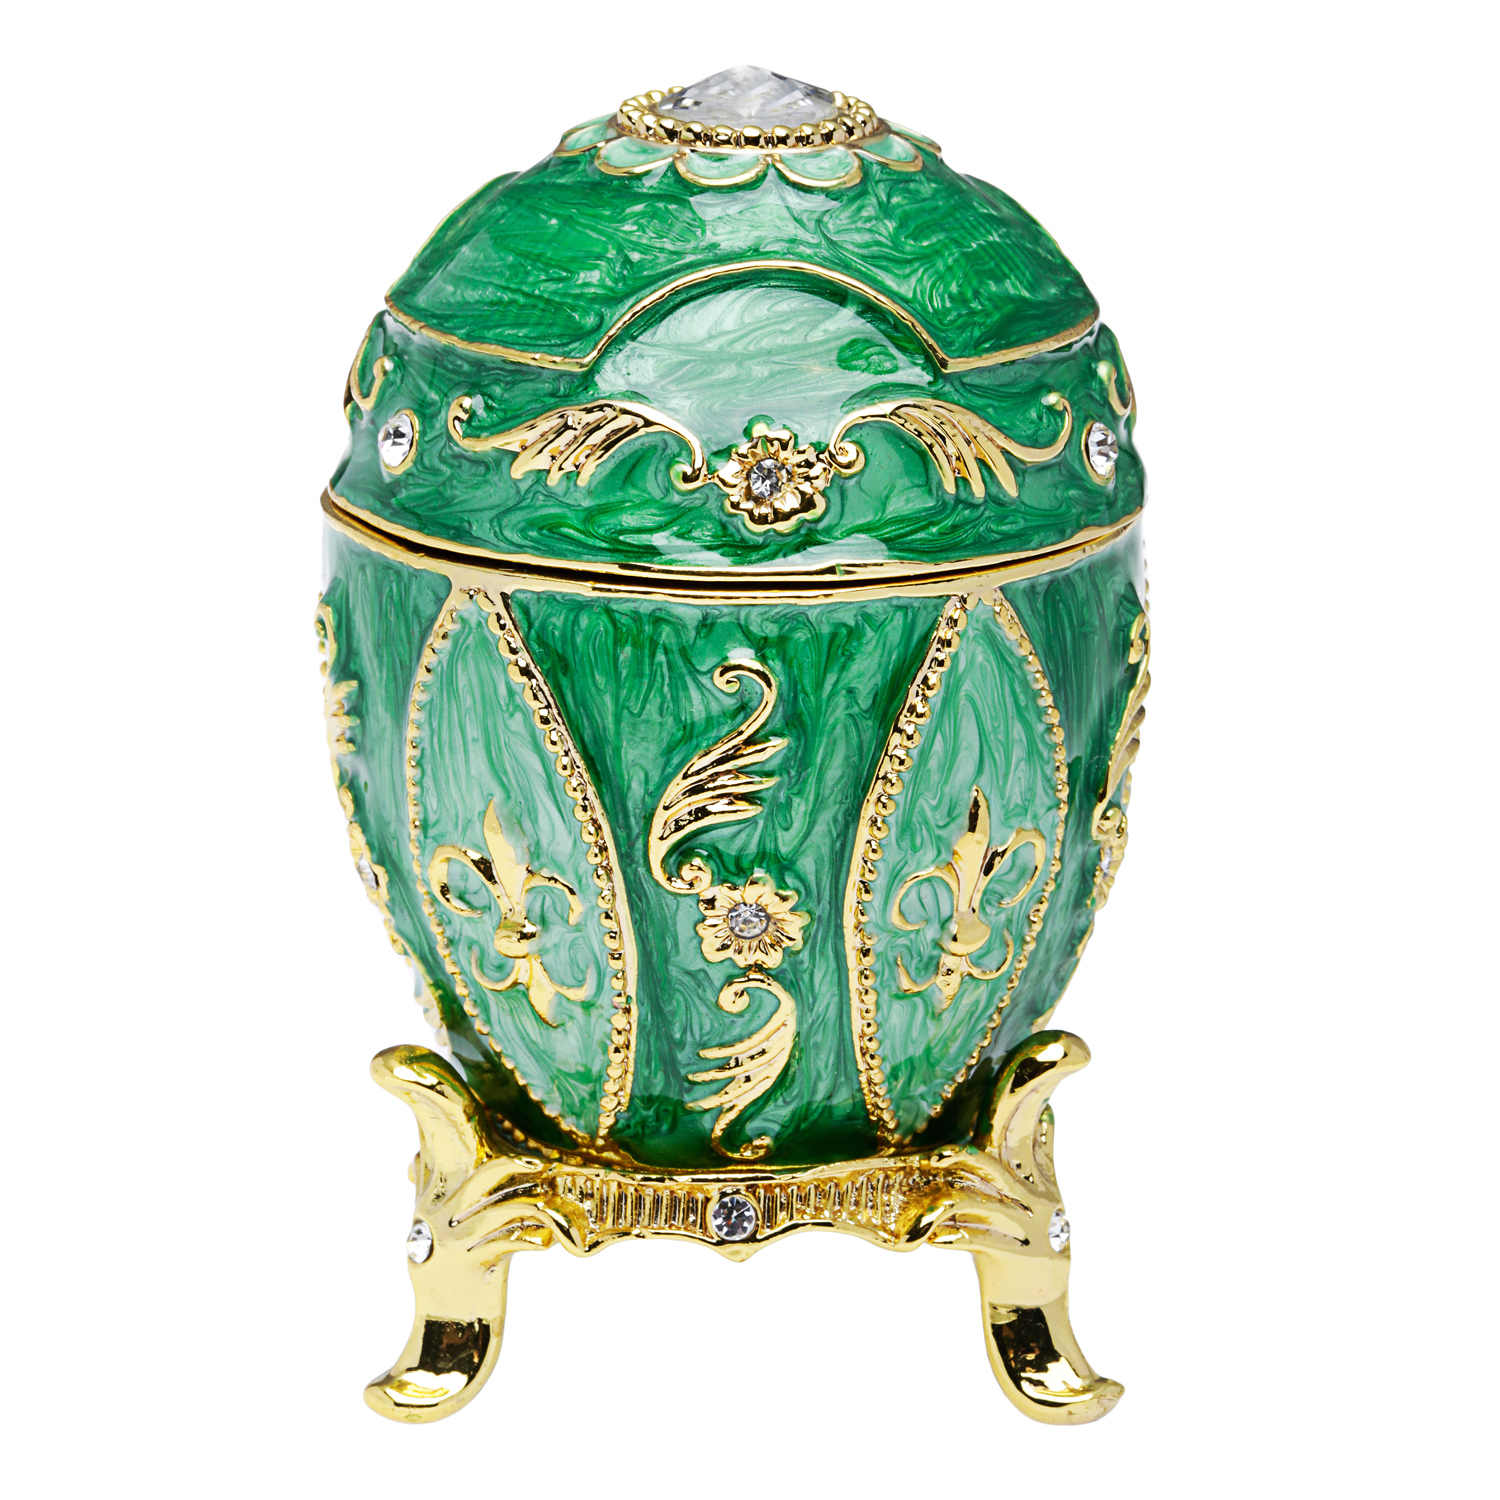 Taylor Avedon- Green Egg Music Box - Jewelry Outlet